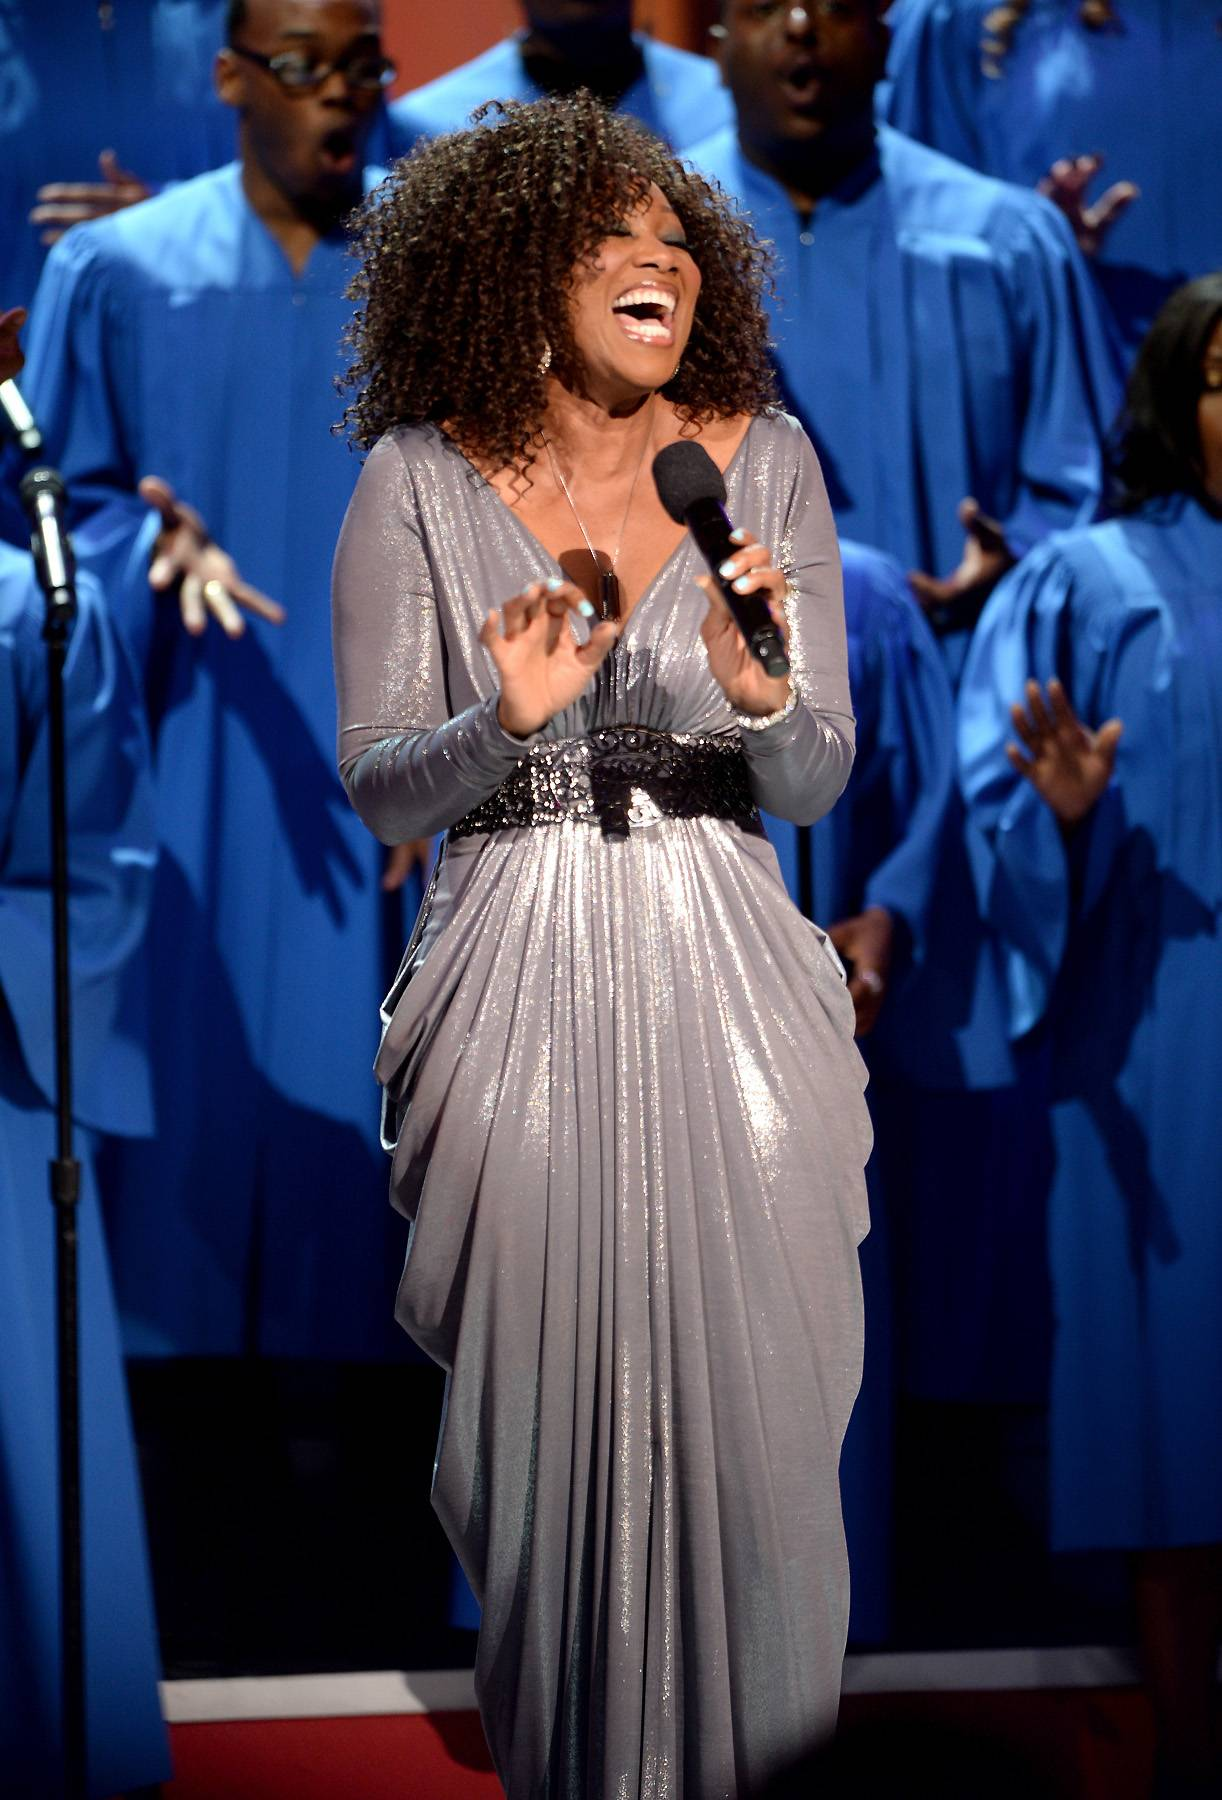 """Yolanda Adams: Road to the BET Awards 2014 - Gospel superstar Yolanda Adams is returning to the BET Awards on June 29! Not having hit the BET stage since 2012, Adams is long overdue for another memorable performance. Over the past year, the """"Open My Heart"""" songstress has continued to expand her brand, all while gearing up to return to the scene in a newly inspired light.(Photo: Jason Kempin/Getty Images for BET)"""